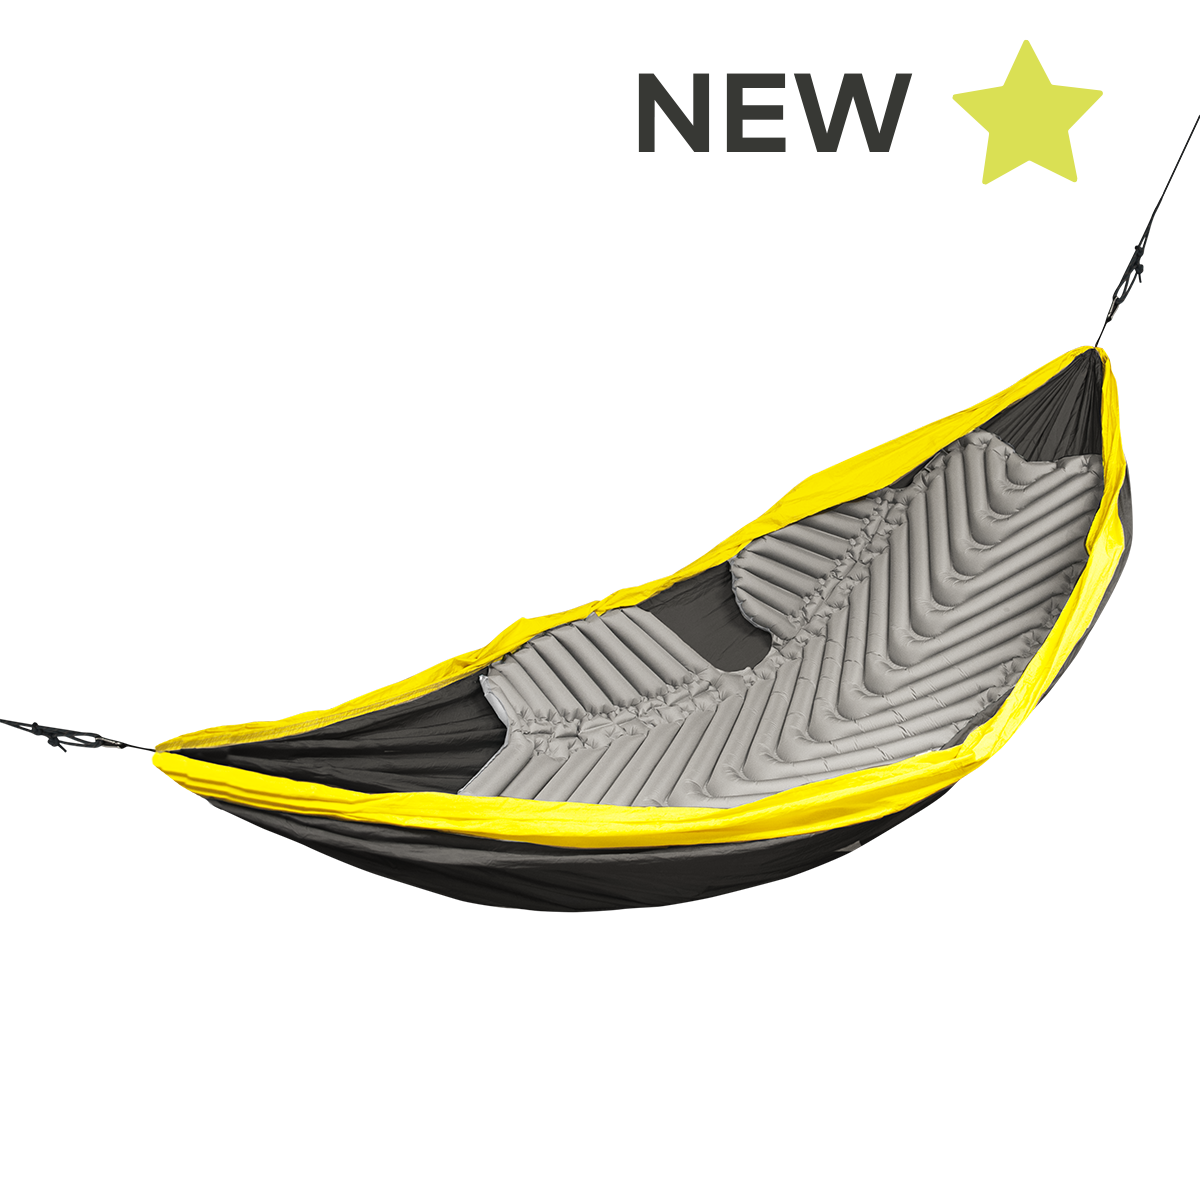 Hammock clipart exotic. The v is first